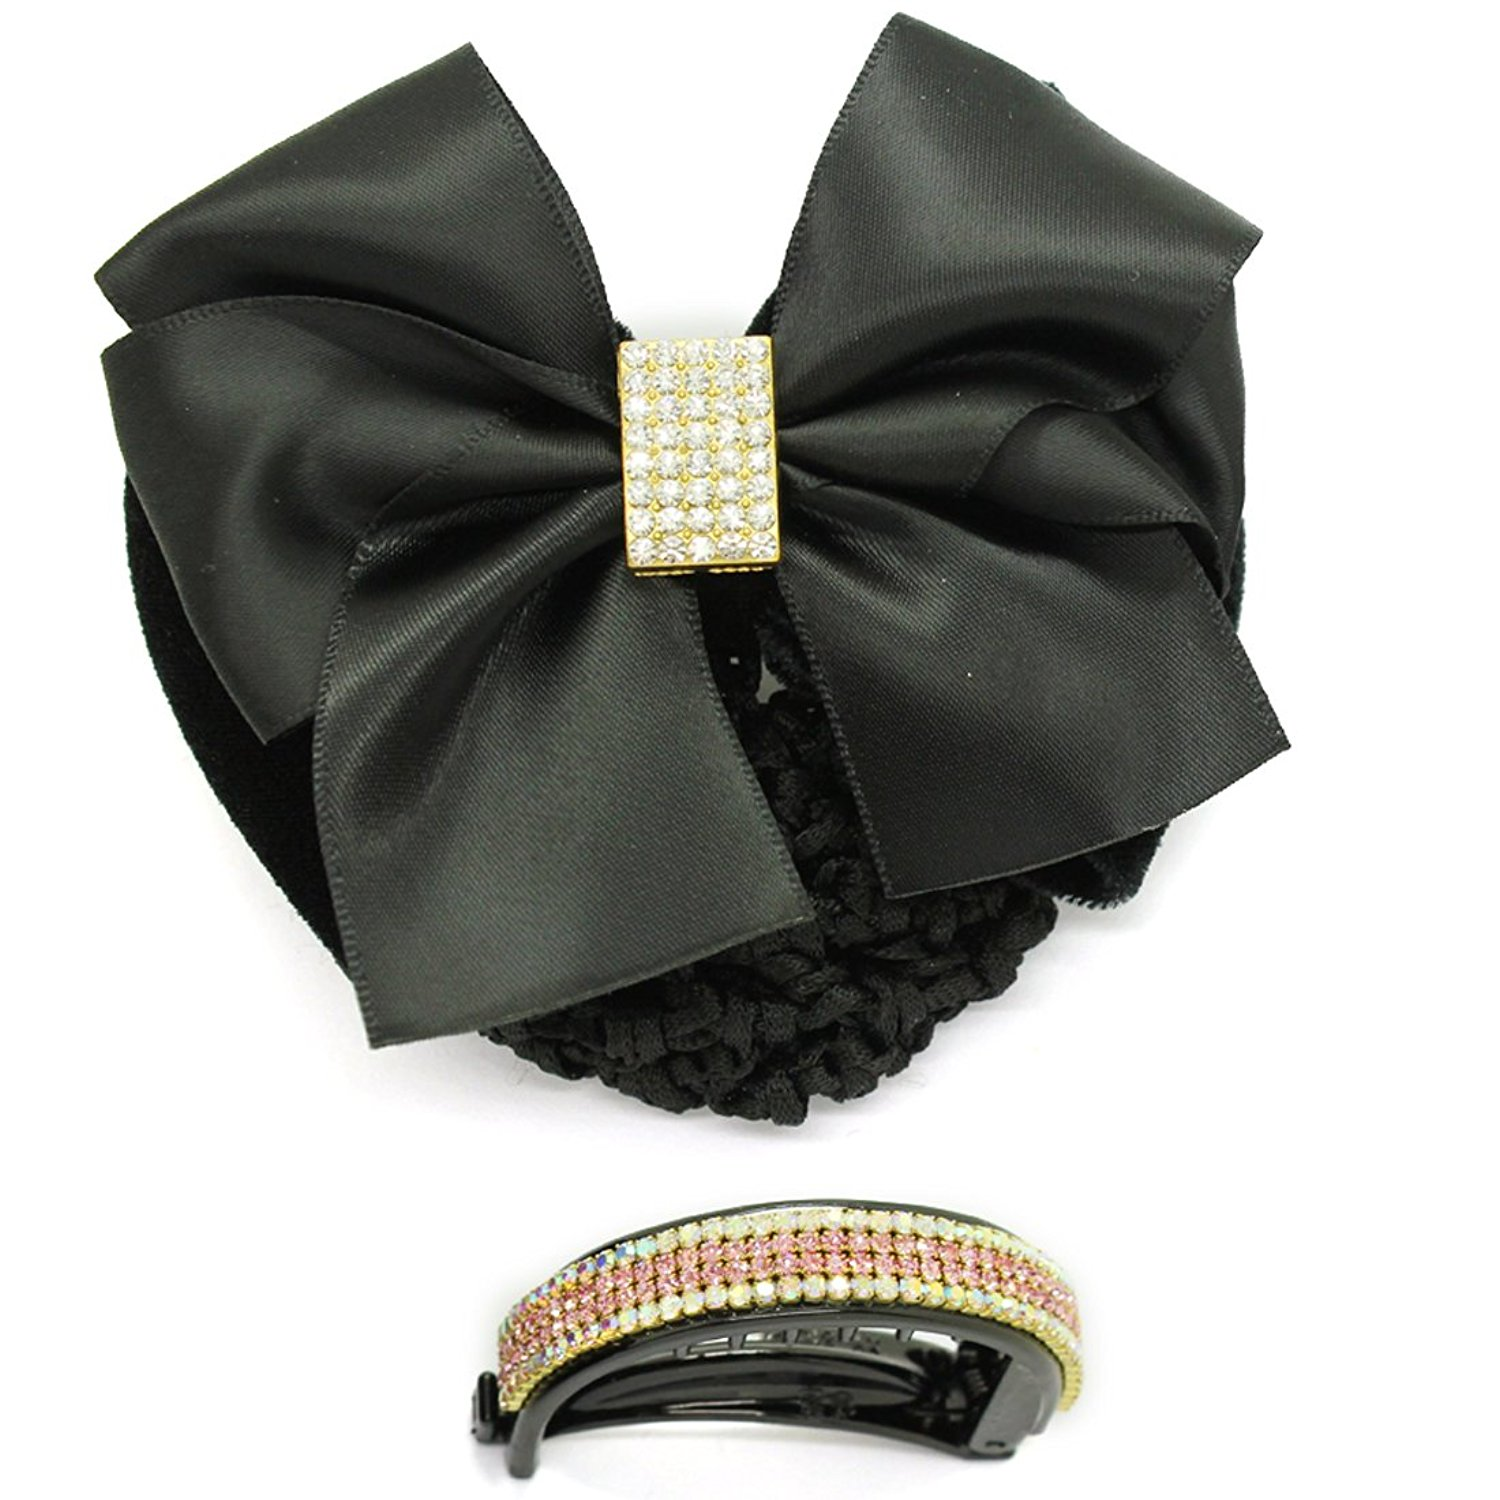 2 PACK - Womens / Girls Luxury Rhinestones Bow-Knot Hair Snap Clips - Black & Brown